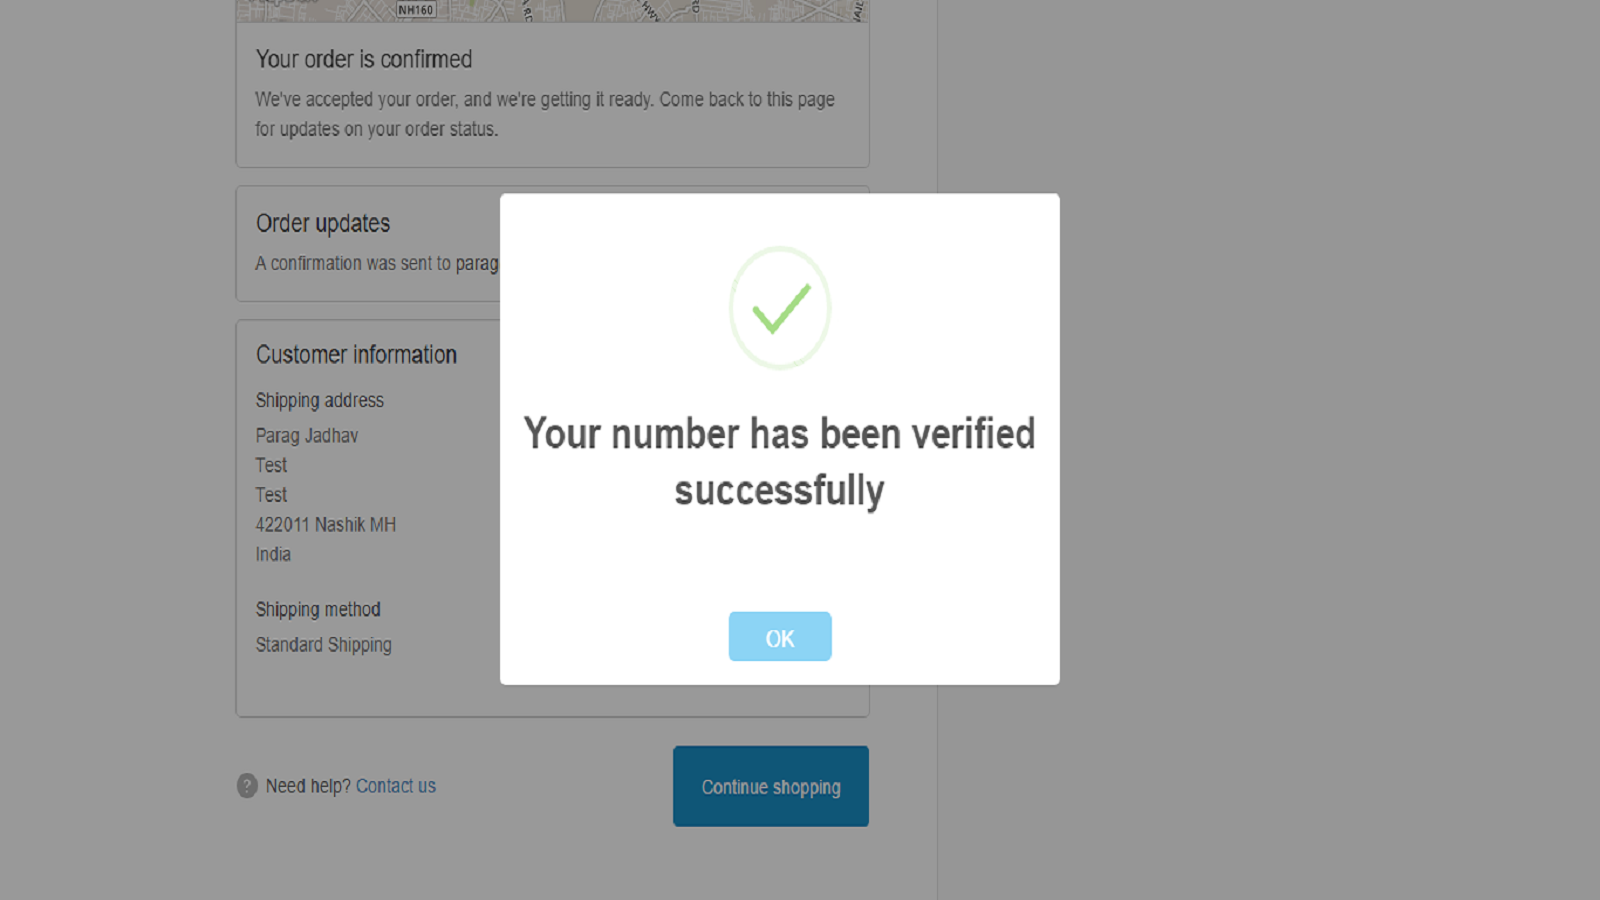 Successful number verification